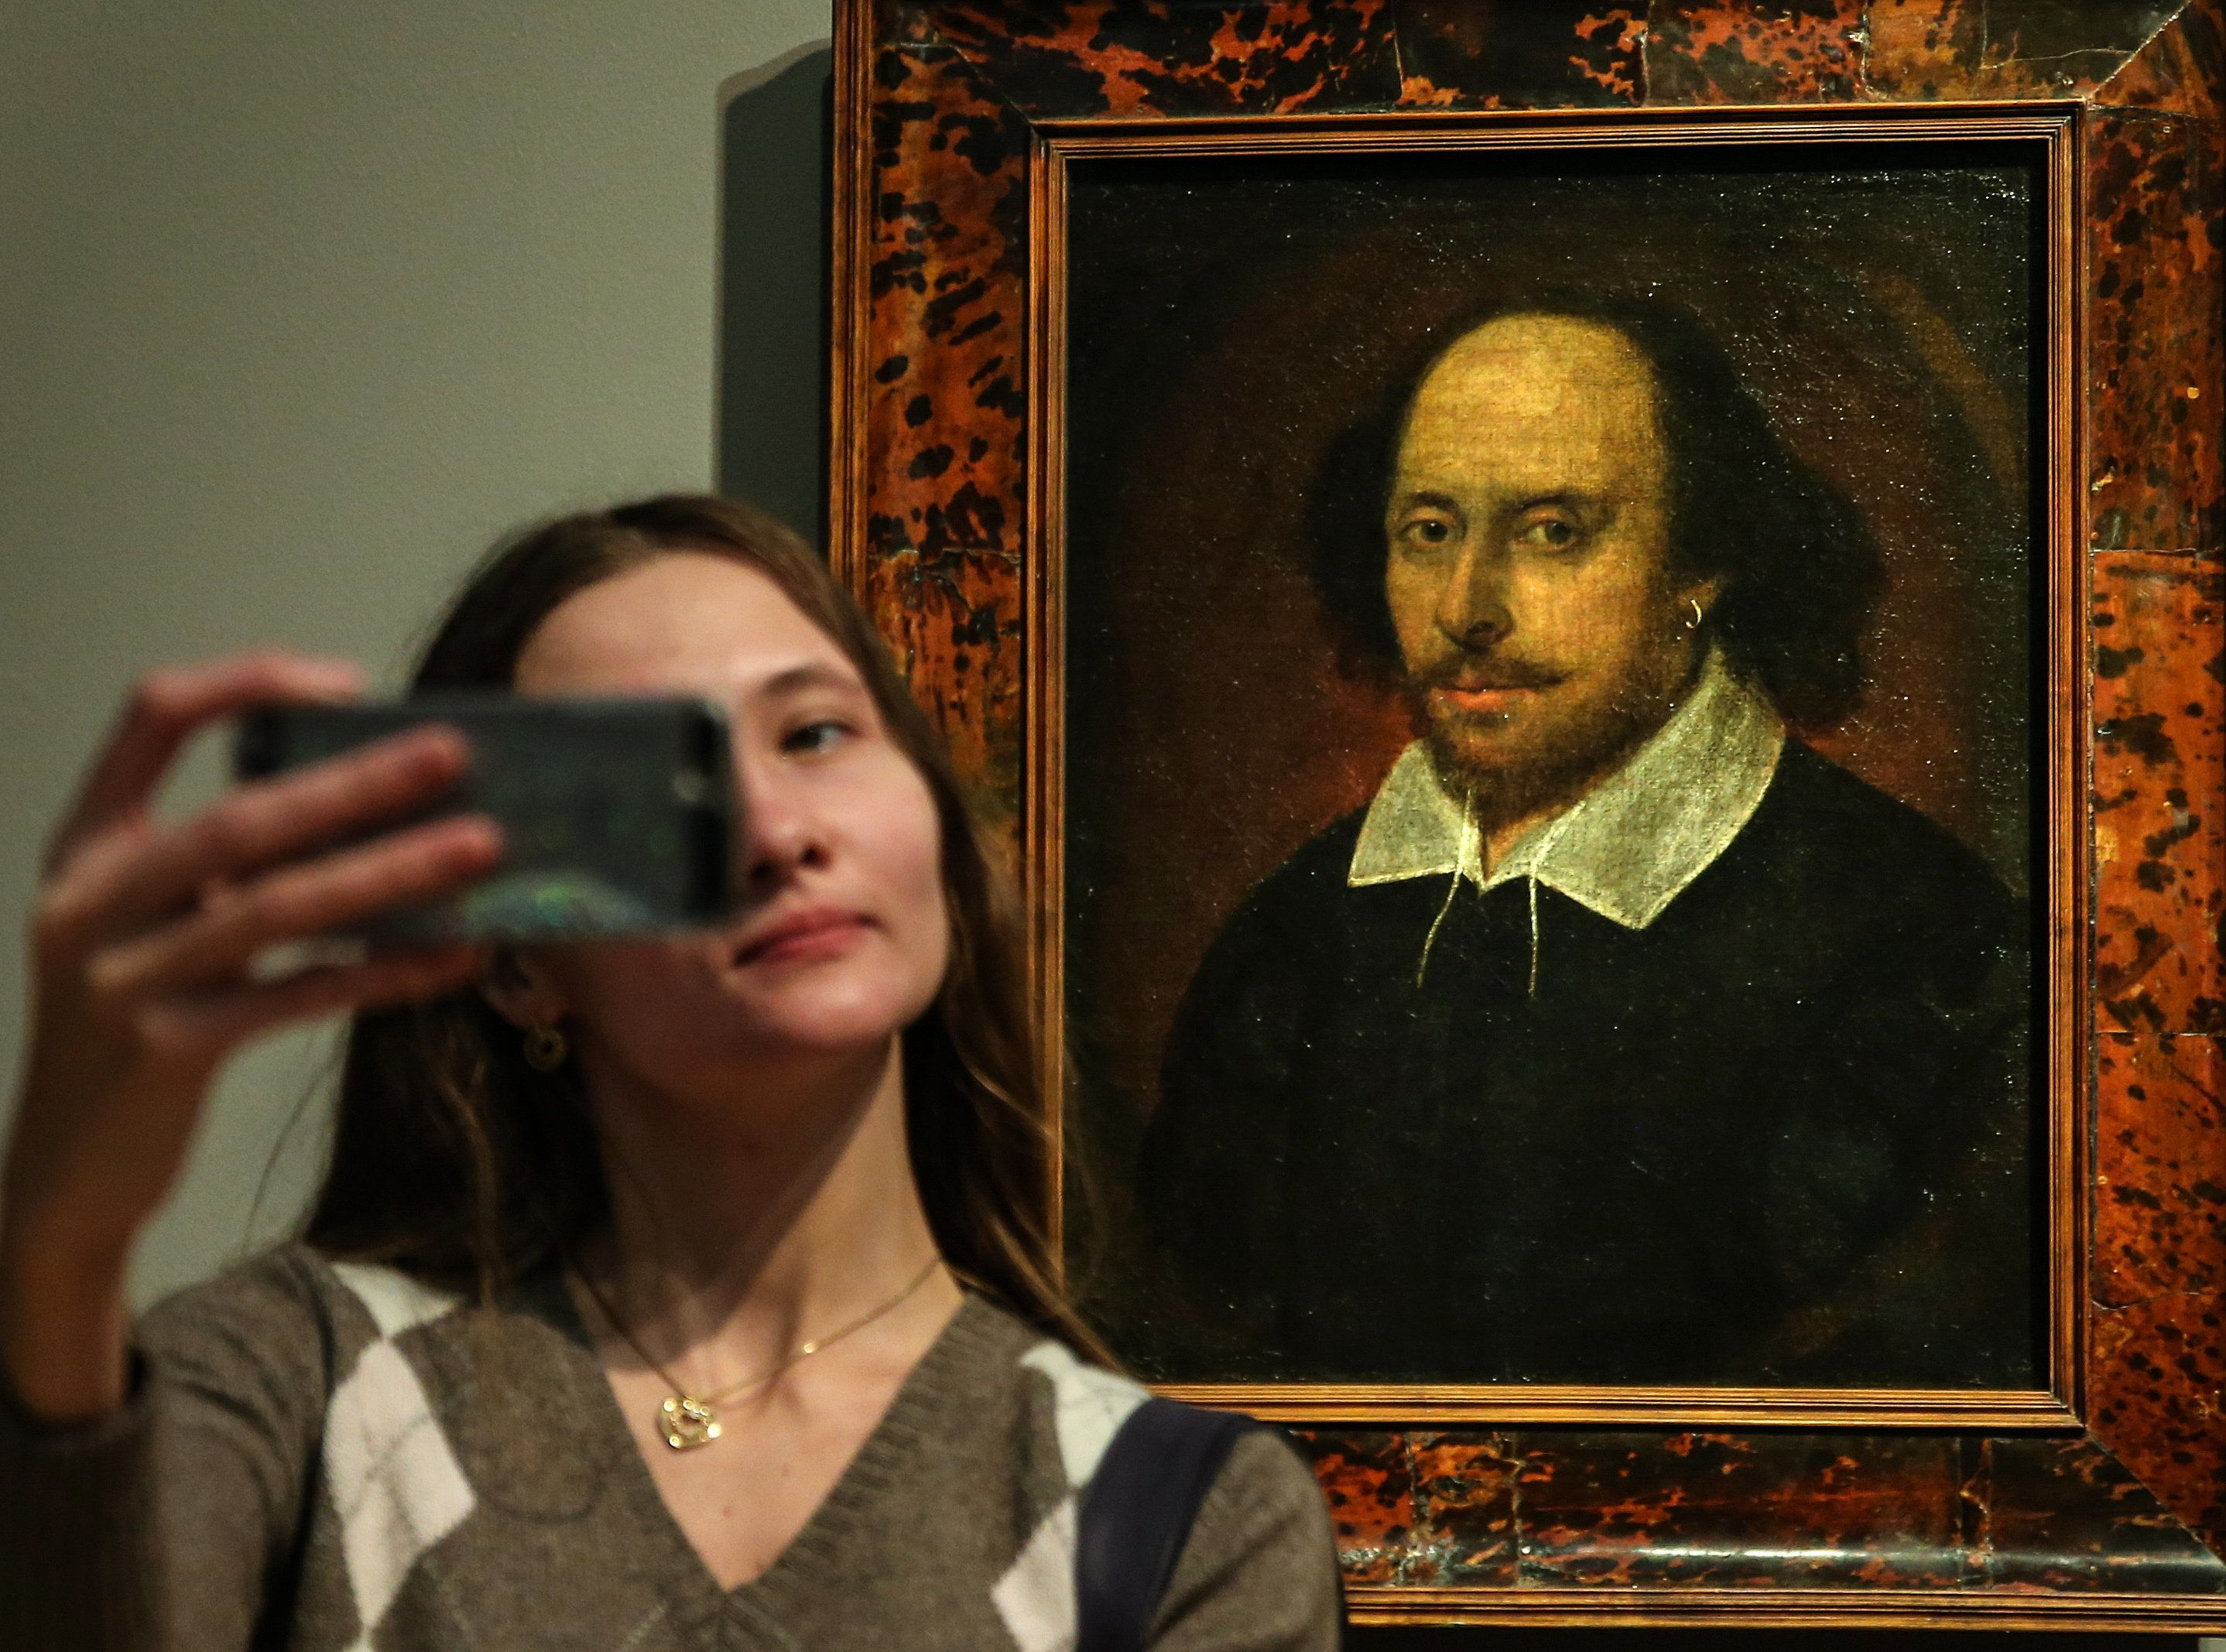 A woman takes a selfie in front of a portrait of William Shakespeare on April 21, 2016 in Moscow. April 23 is the 400th anniv